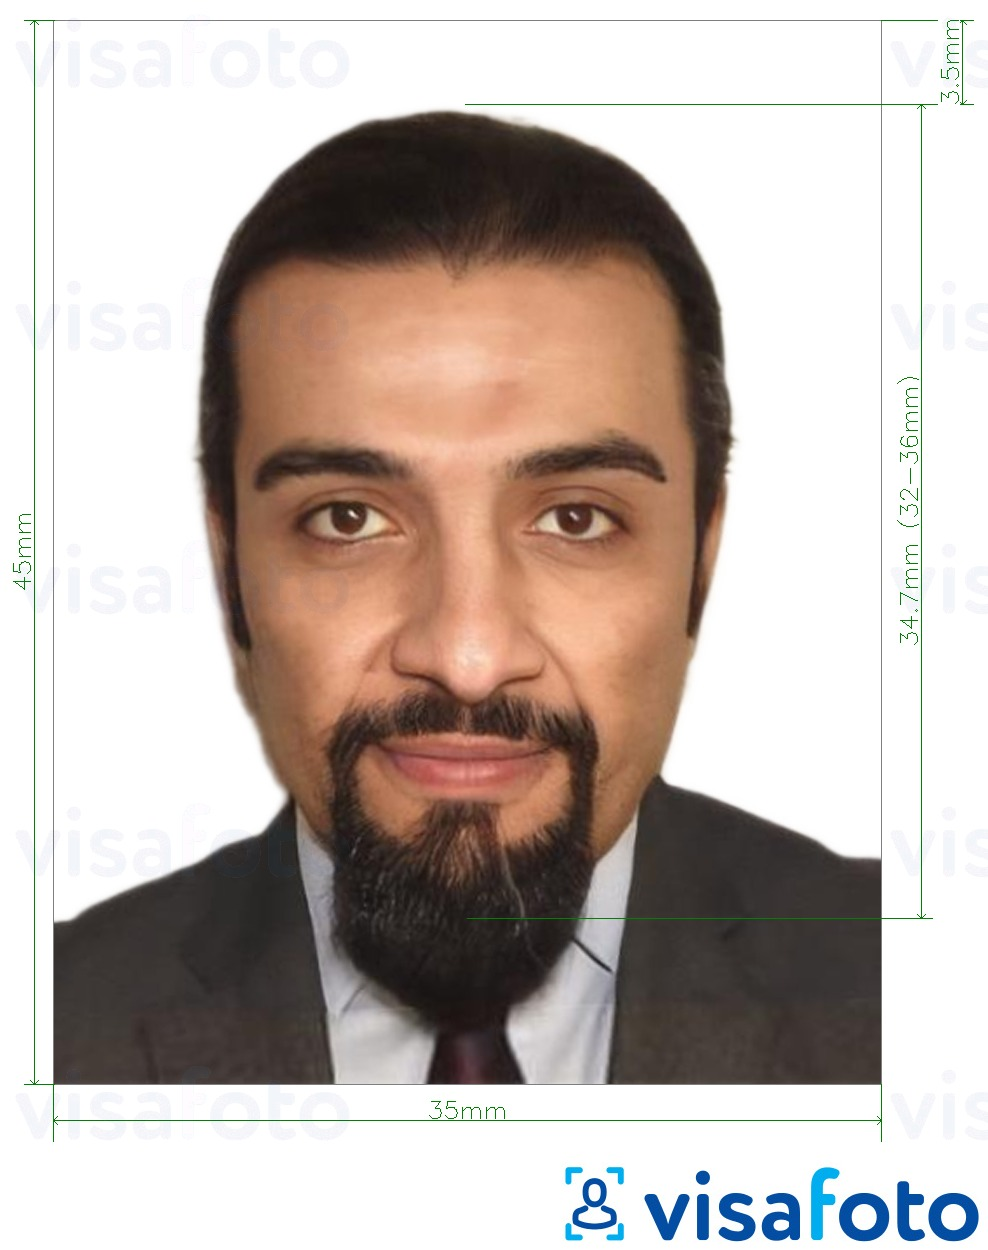 Example of photo for Algeria passport 35x45 mm (3.5x4.5 cm) with exact size specification